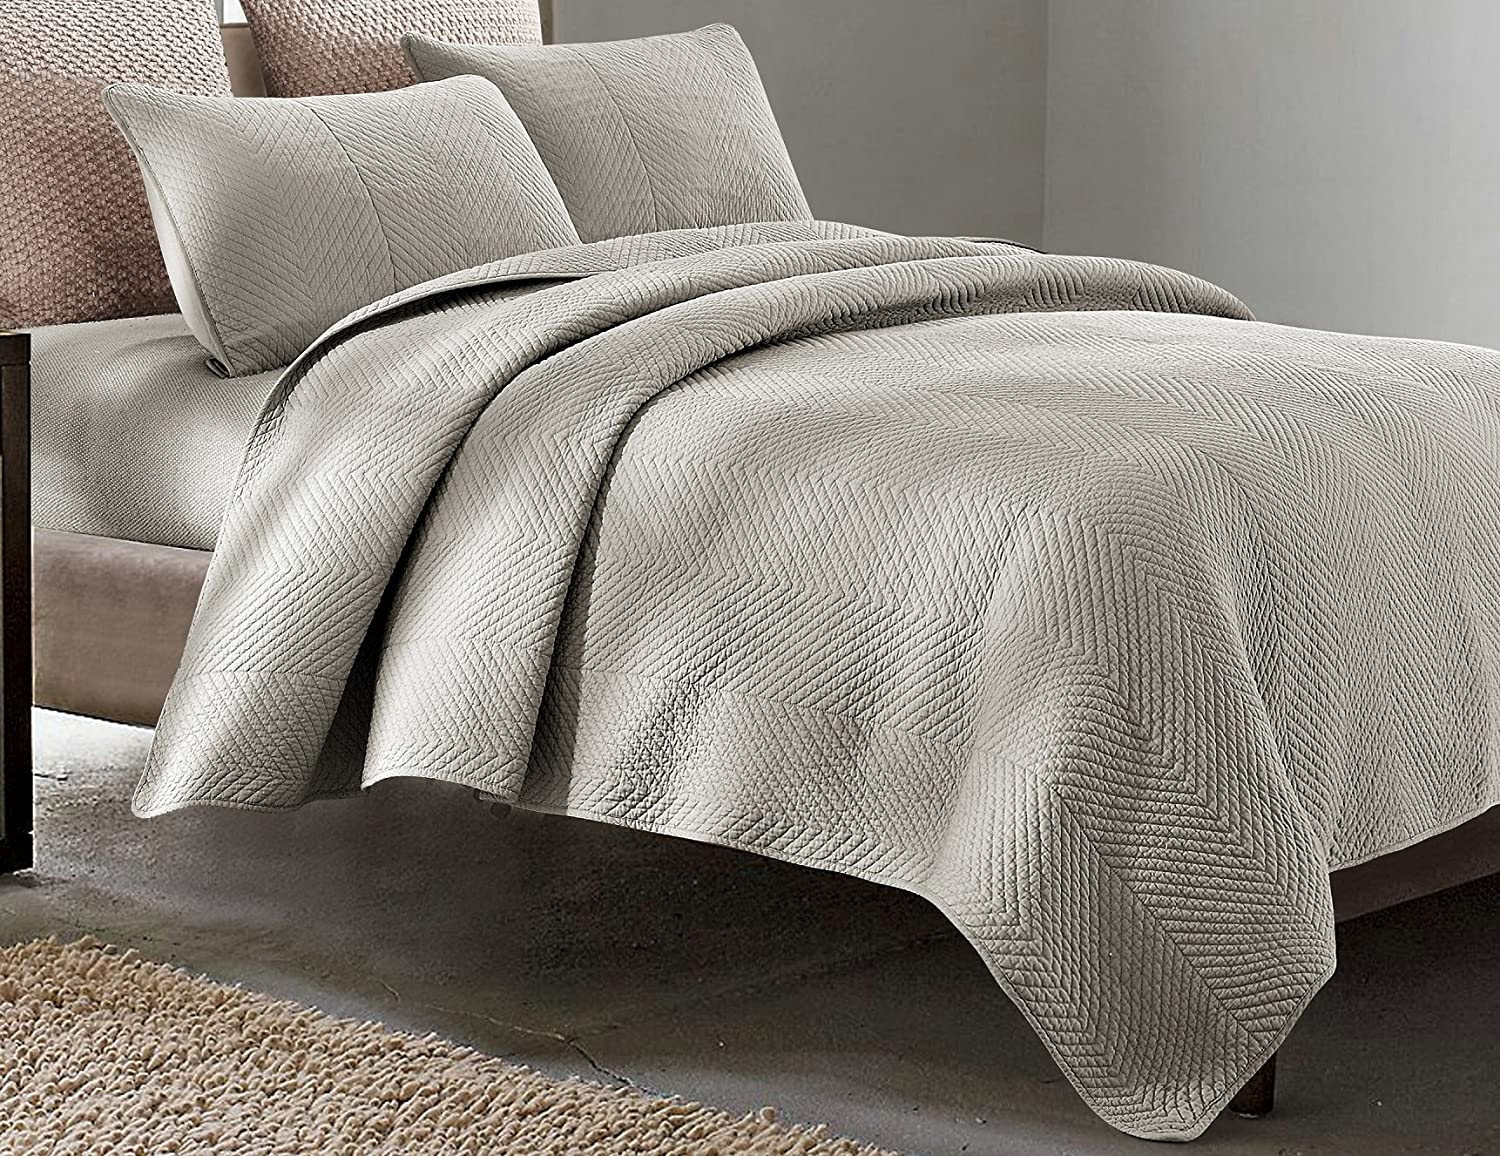 Bright White Hedaya Home Fashions Chevron Quilt Set Full//Queen